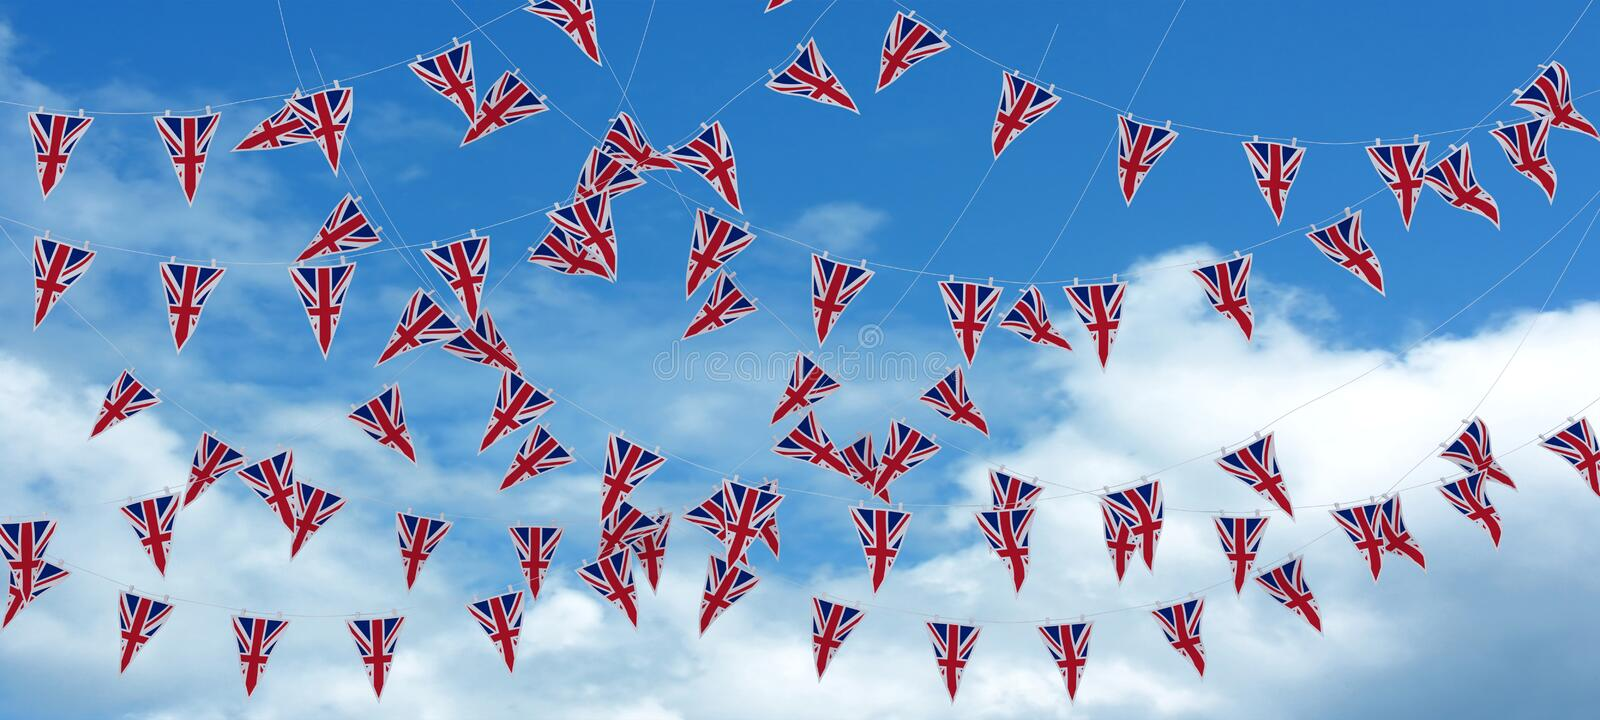 Download Union Jack Bunting And Banners Stock Illustration - Image: 24941878